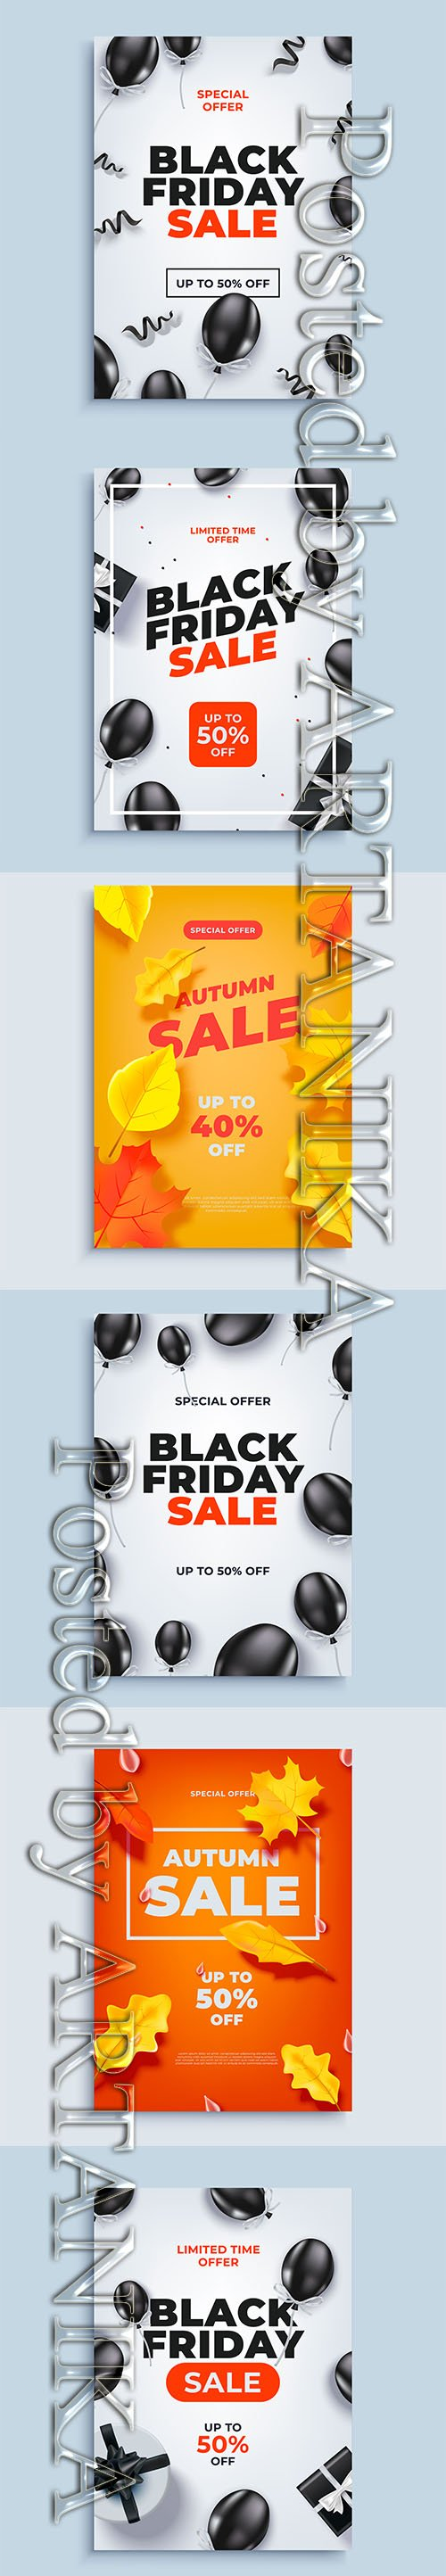 Black Friday and Autumn Sale Banner Background with Baloons